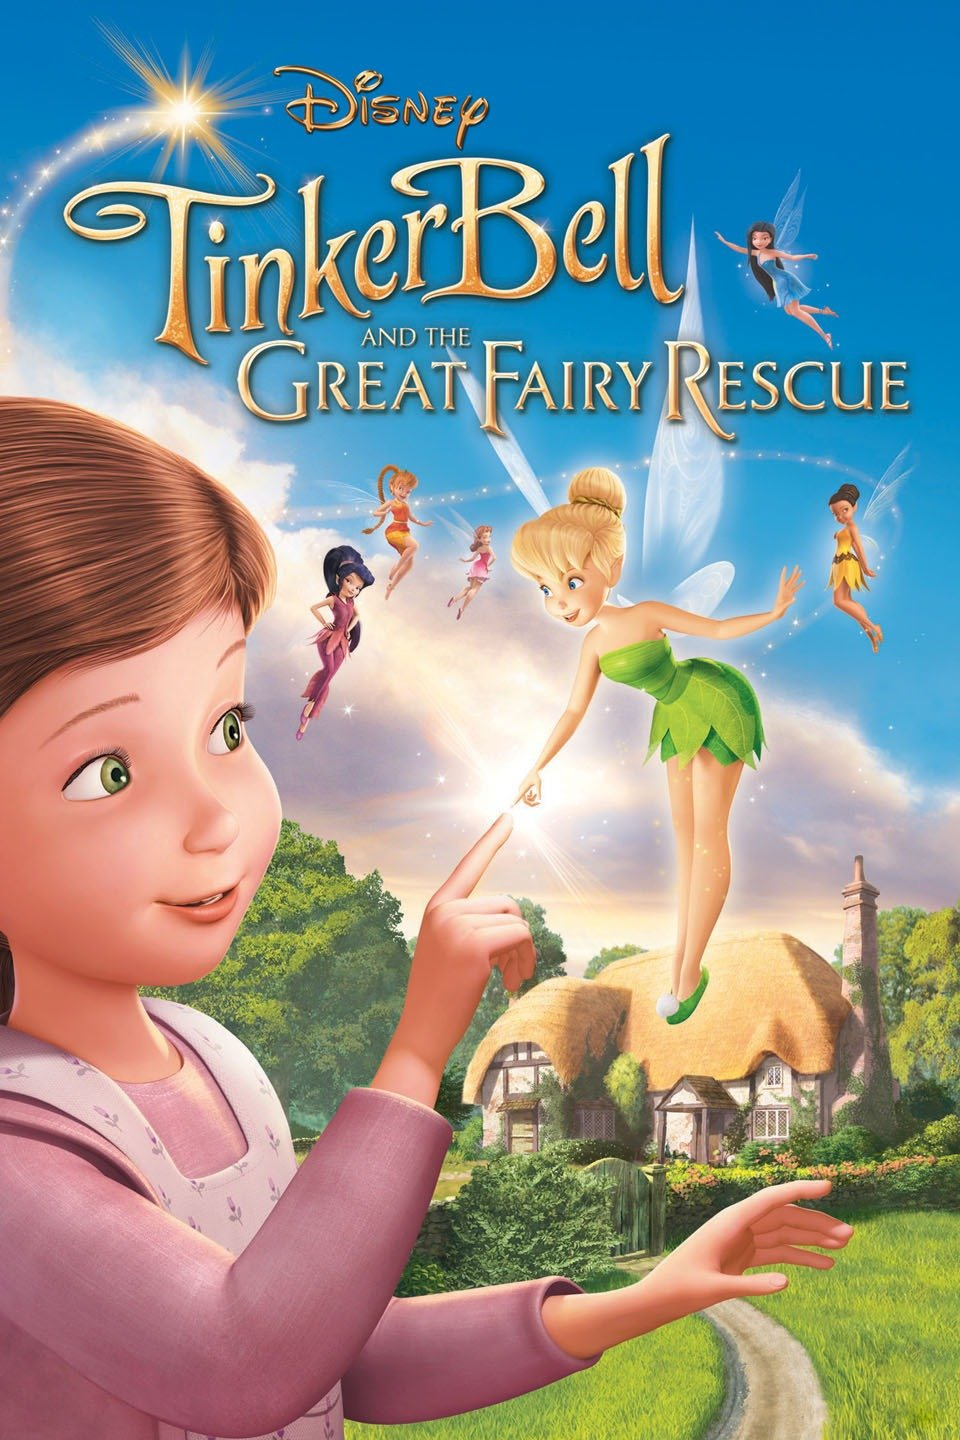 Tinker-Bell-and-the-Great-Fairy-Rescue-2010-The-Movie-พากย์ไทย